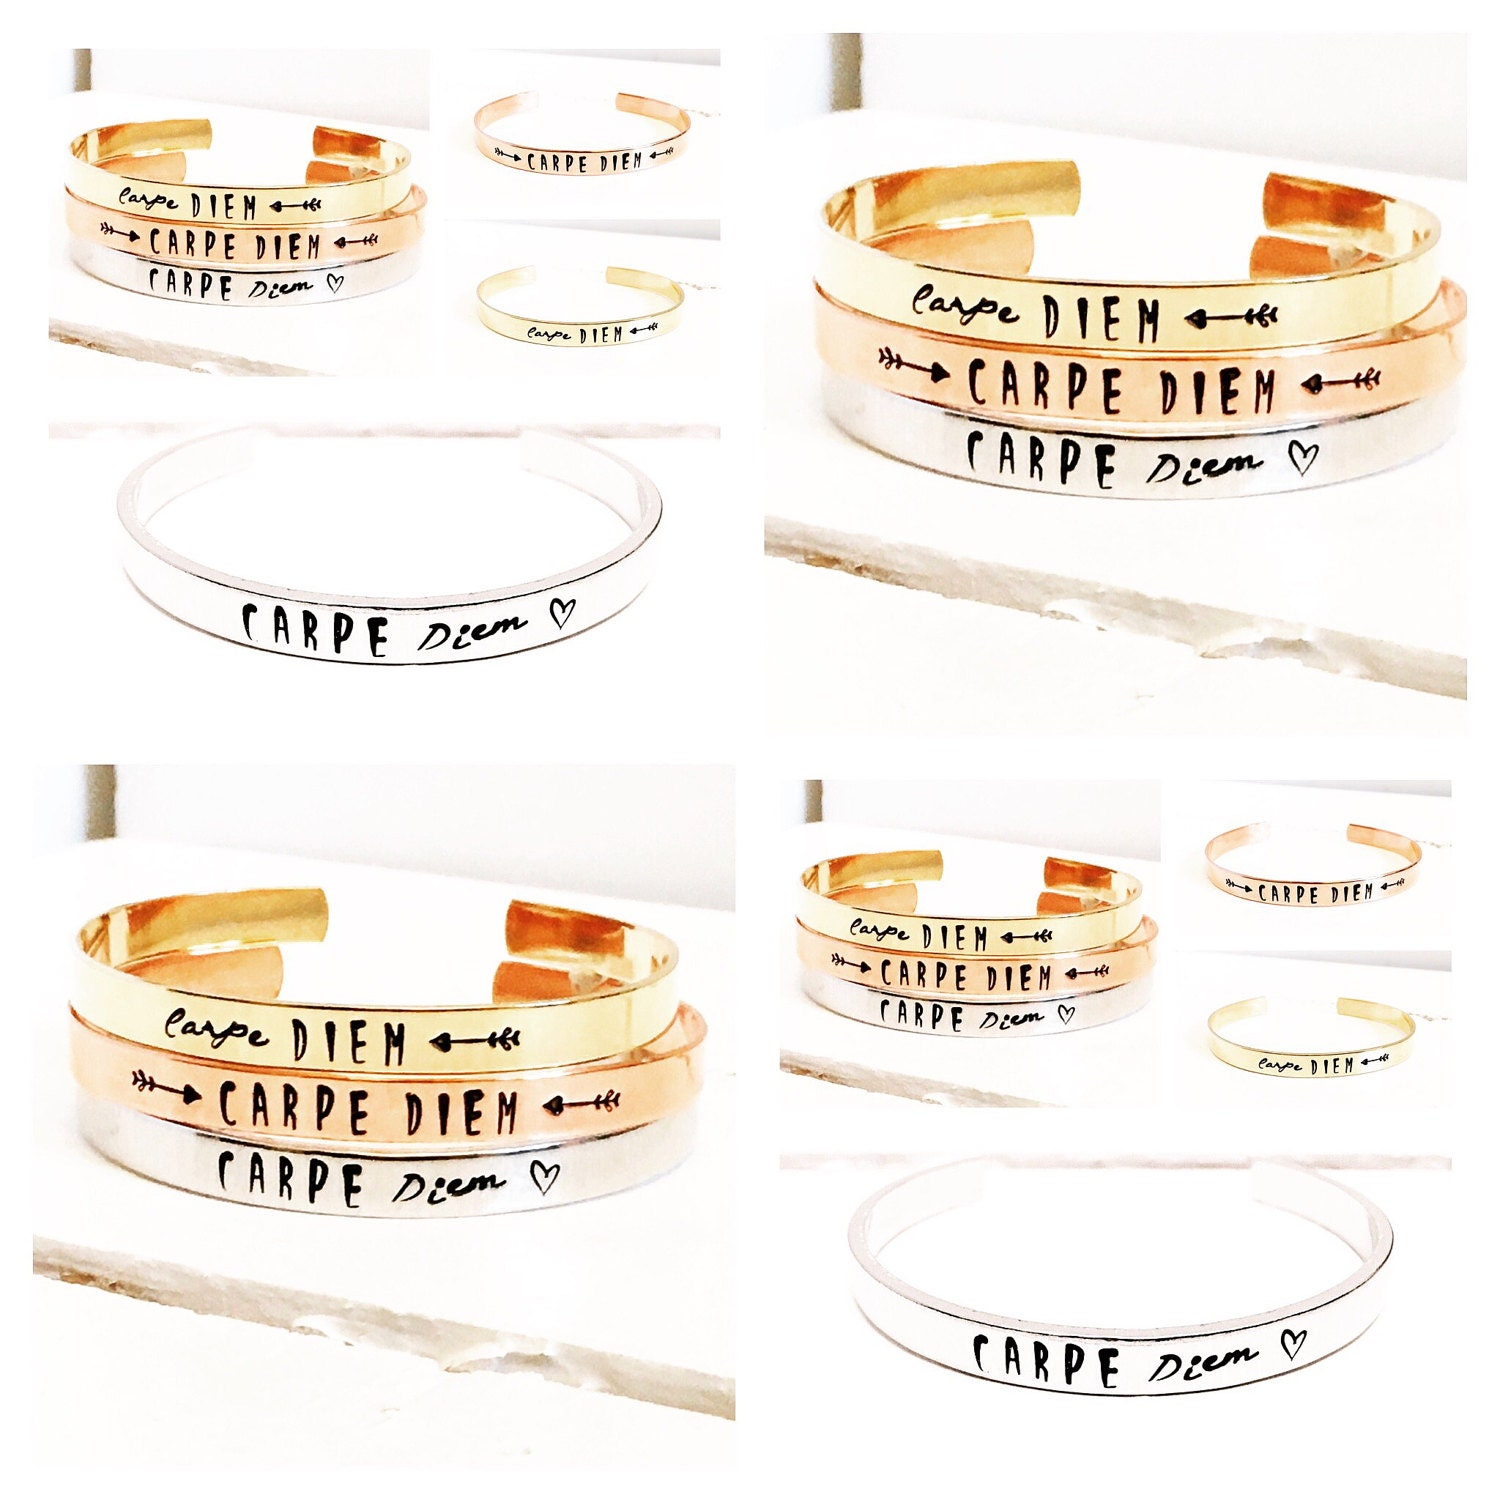 Womens Gift Ideas  Personalized Cuff Bracelet  Quote Gift  Carpe Diem  Gift ideas for her  Rose Gold Bracelet  Gold Bracelet (C136)